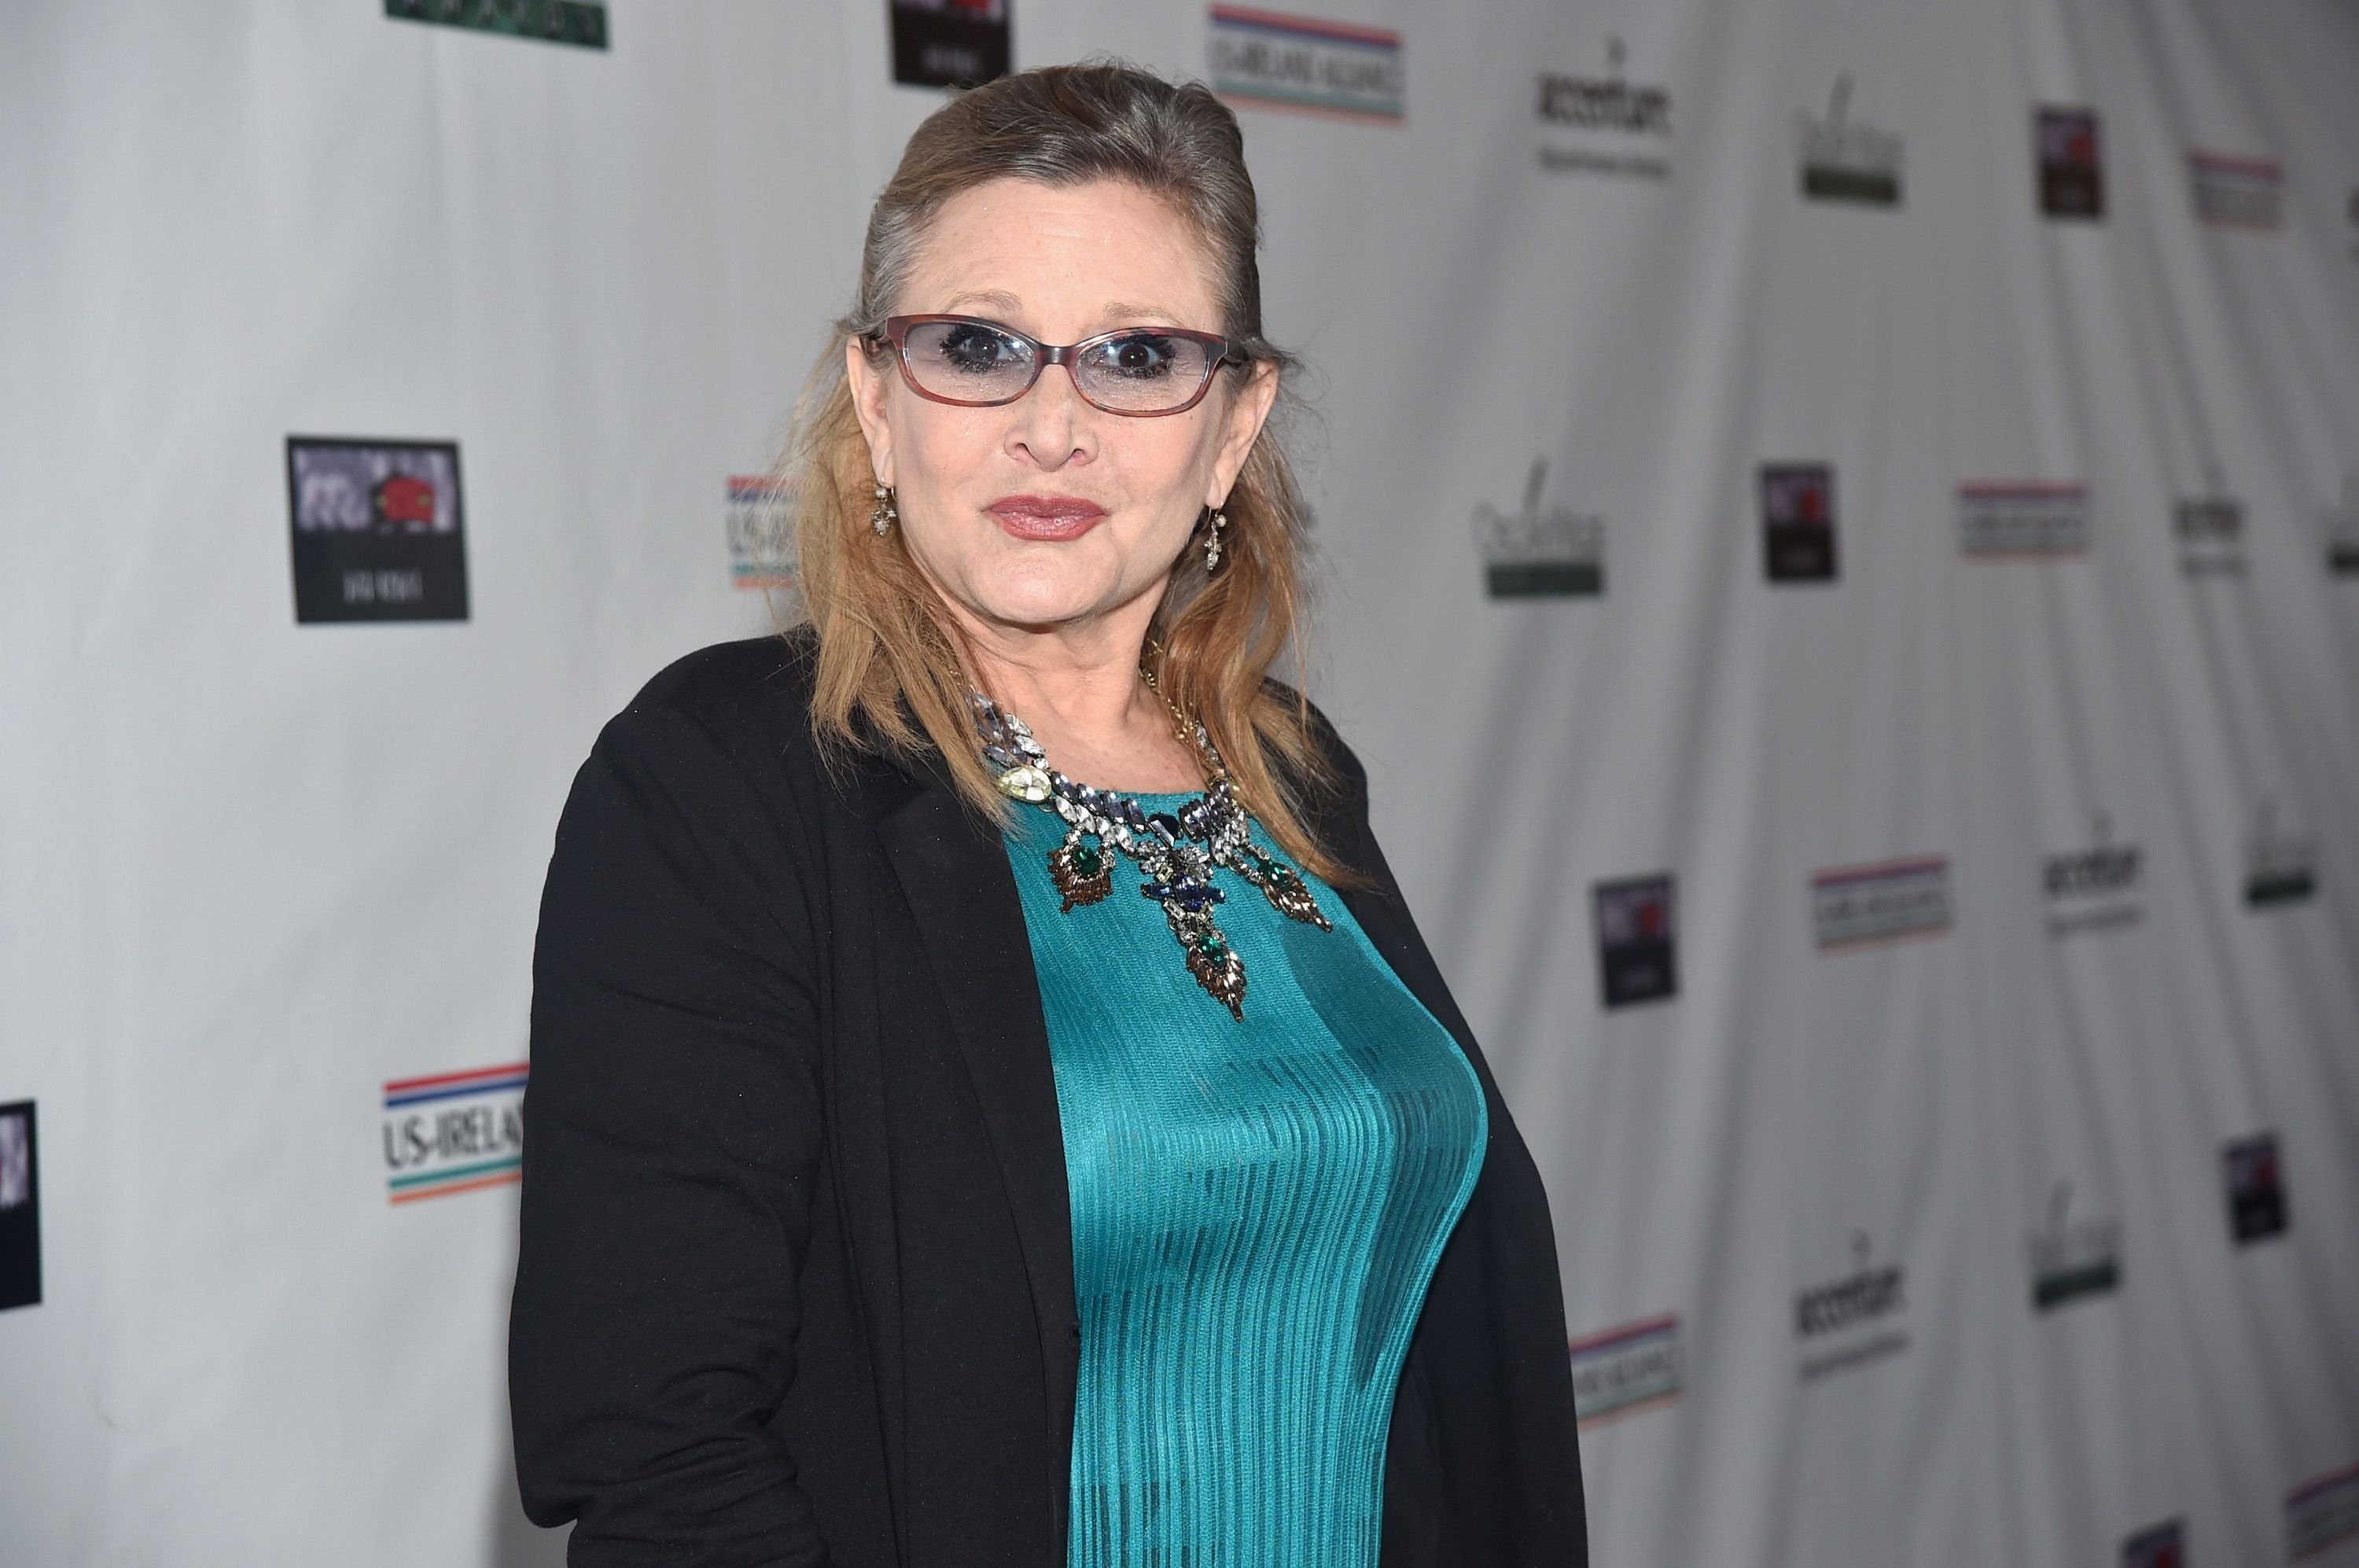 Carrie Fisher attends the US-Ireland Aliiance's Oscar Wilde Awards event at J.J. Abrams' Bad Robot on February 19, 2015 in Santa Monica, California. | Photo: Getty Images.